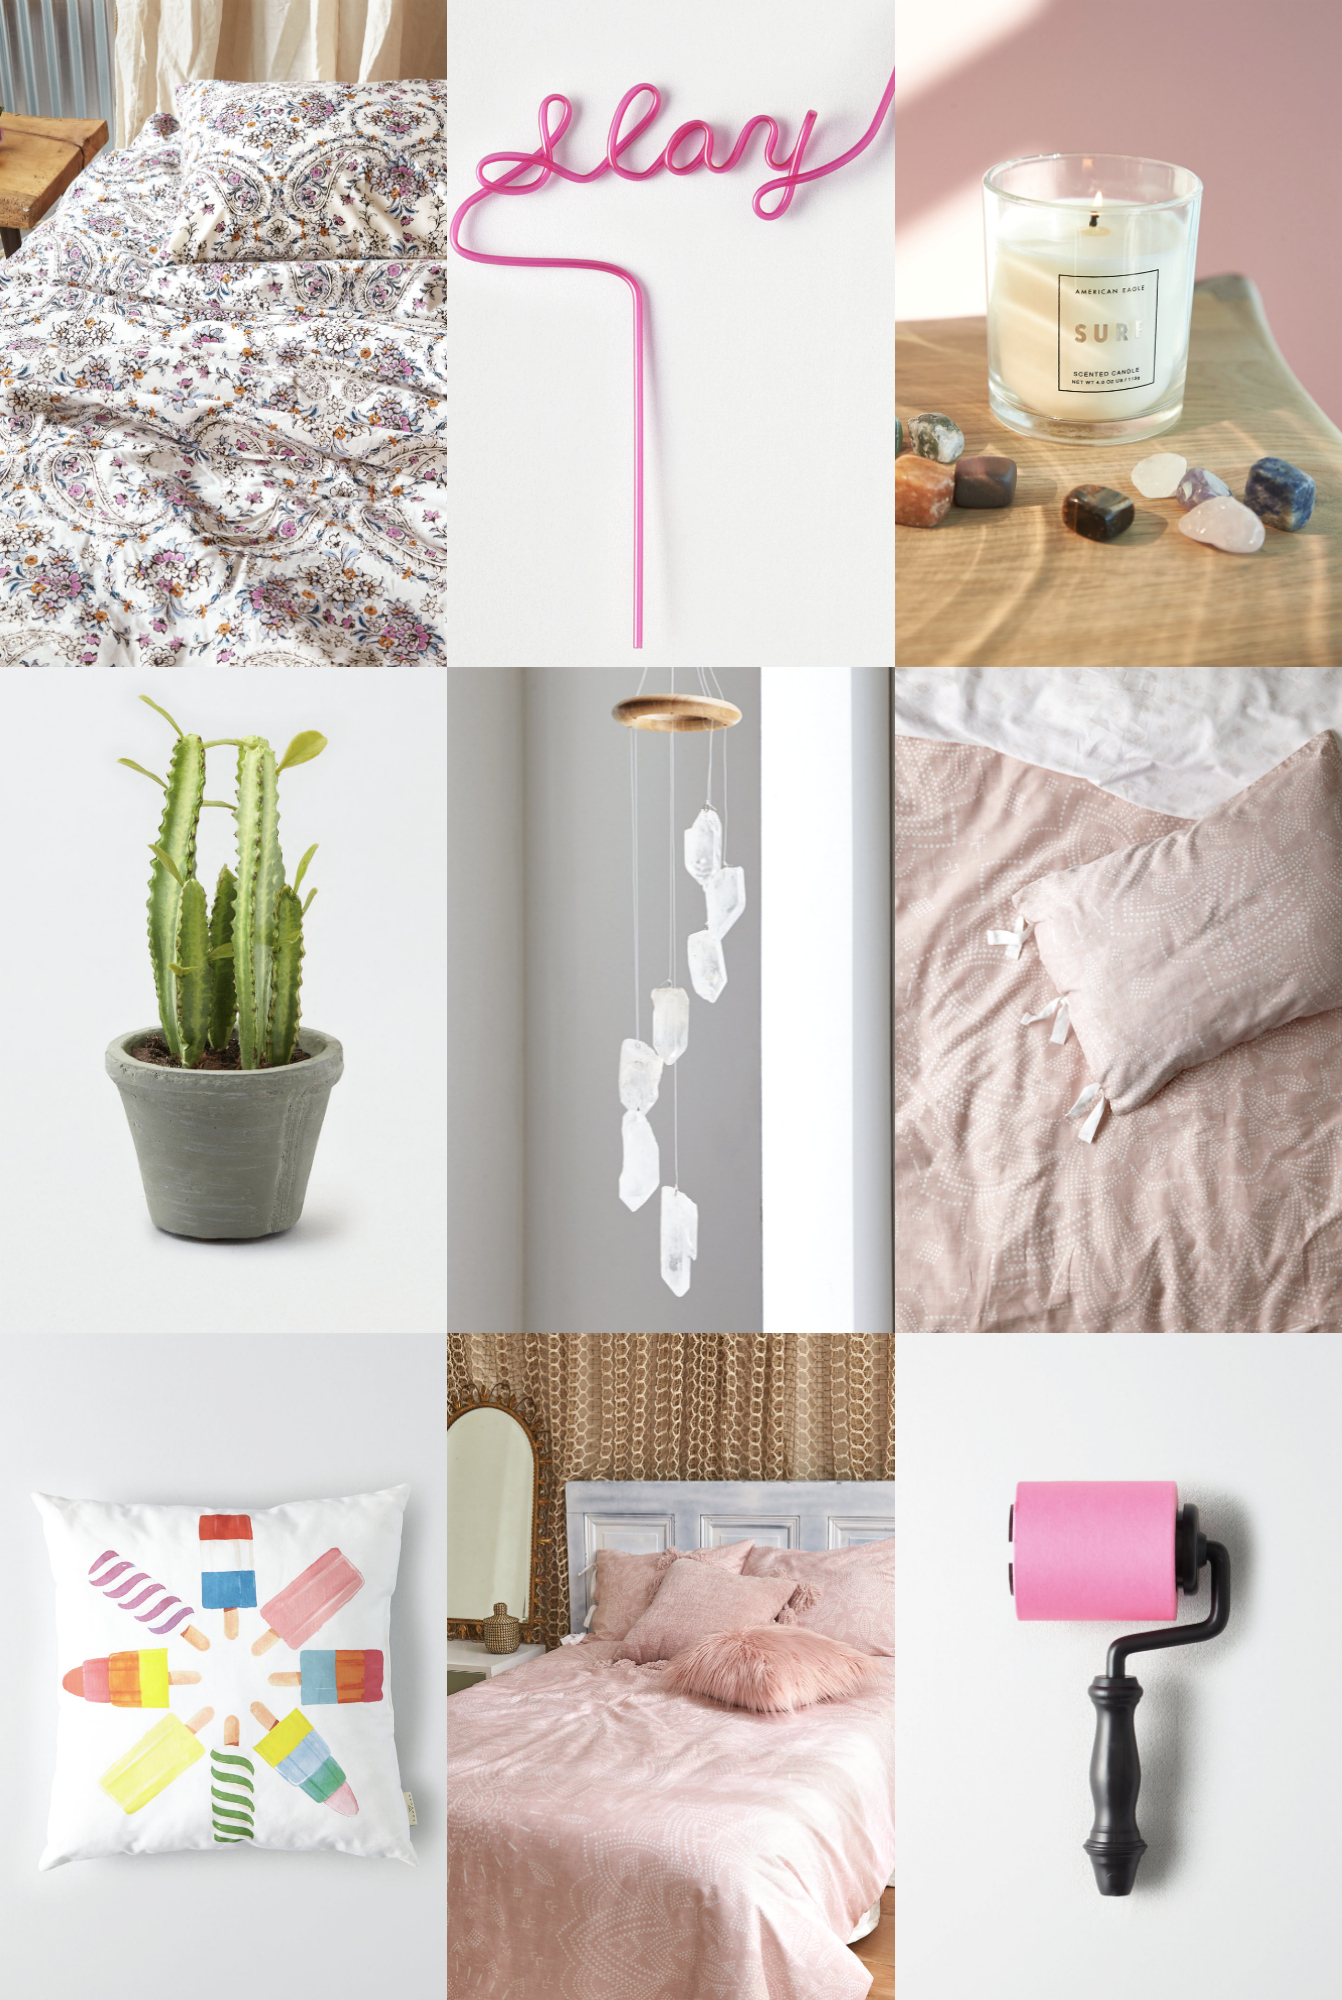 Mash Elle lifestyle blogger | home design | home decor | neon sign | room inspo | crystal decorations | cactus | spring home decor